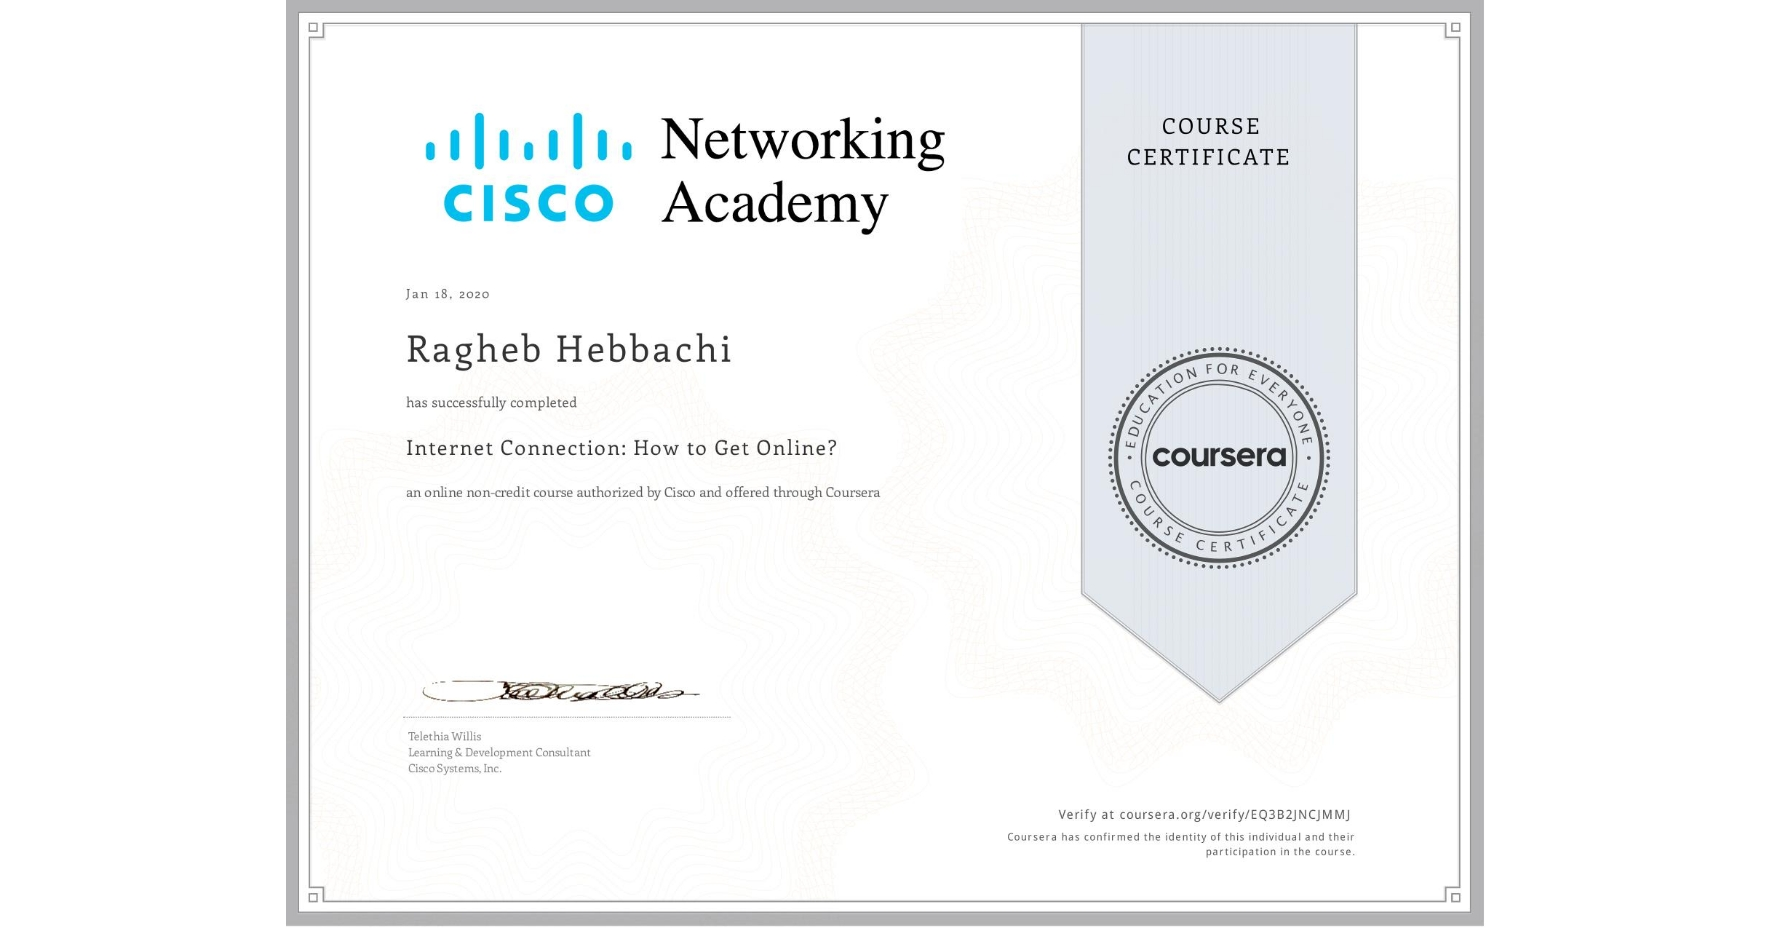 View certificate for Ragheb Hebbachi, Internet Connection: How to Get Online?, an online non-credit course authorized by Cisco and offered through Coursera